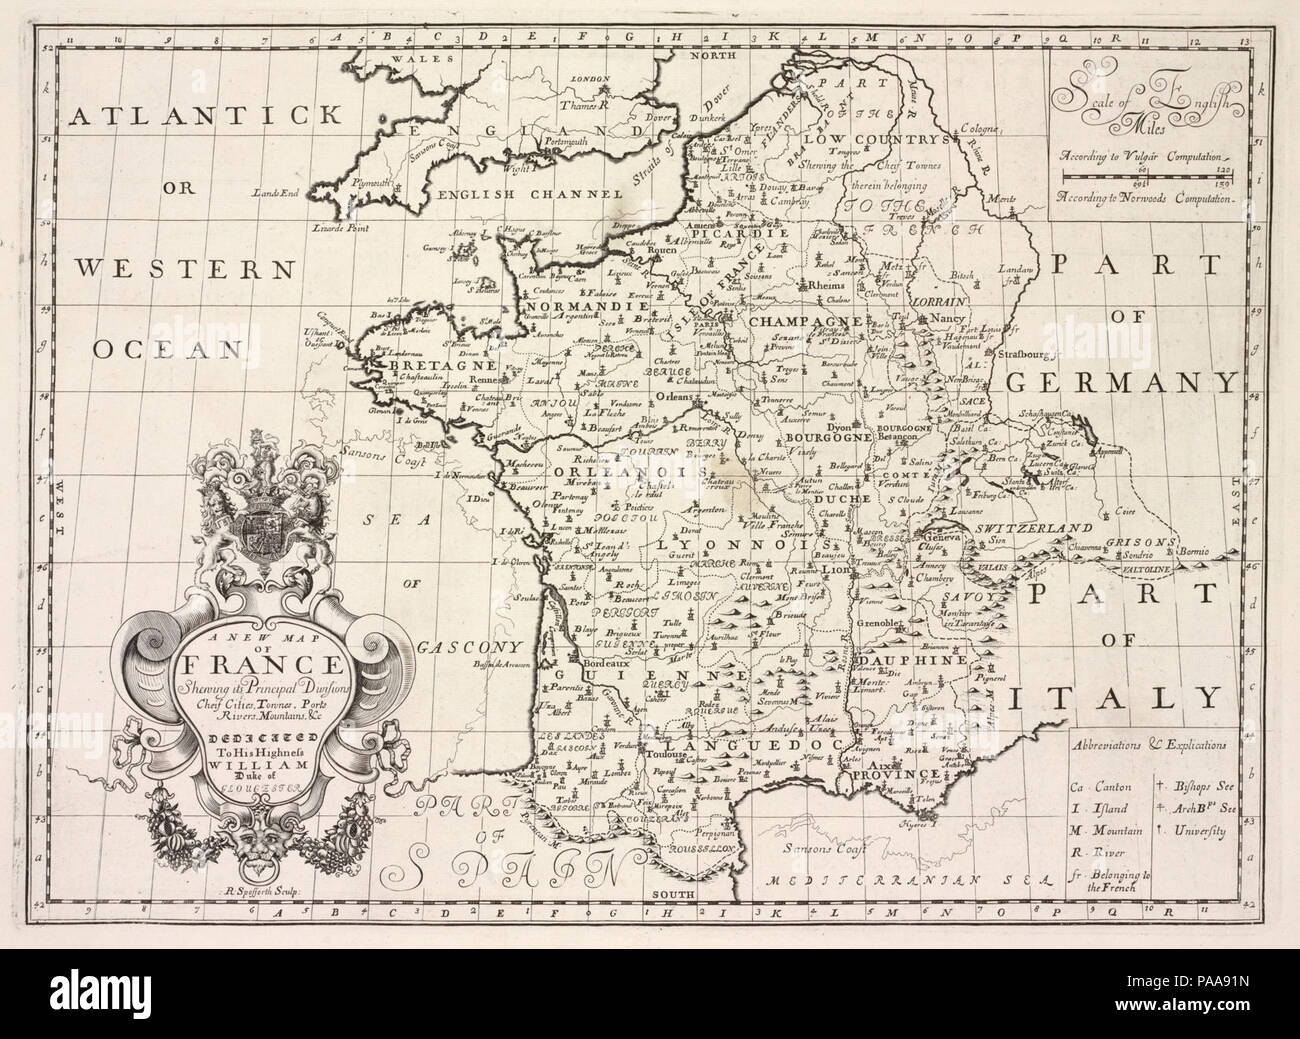 Map Of France Rivers And Mountains.A New Map Of France Shewing Its Principal Divisions Cheif Cities